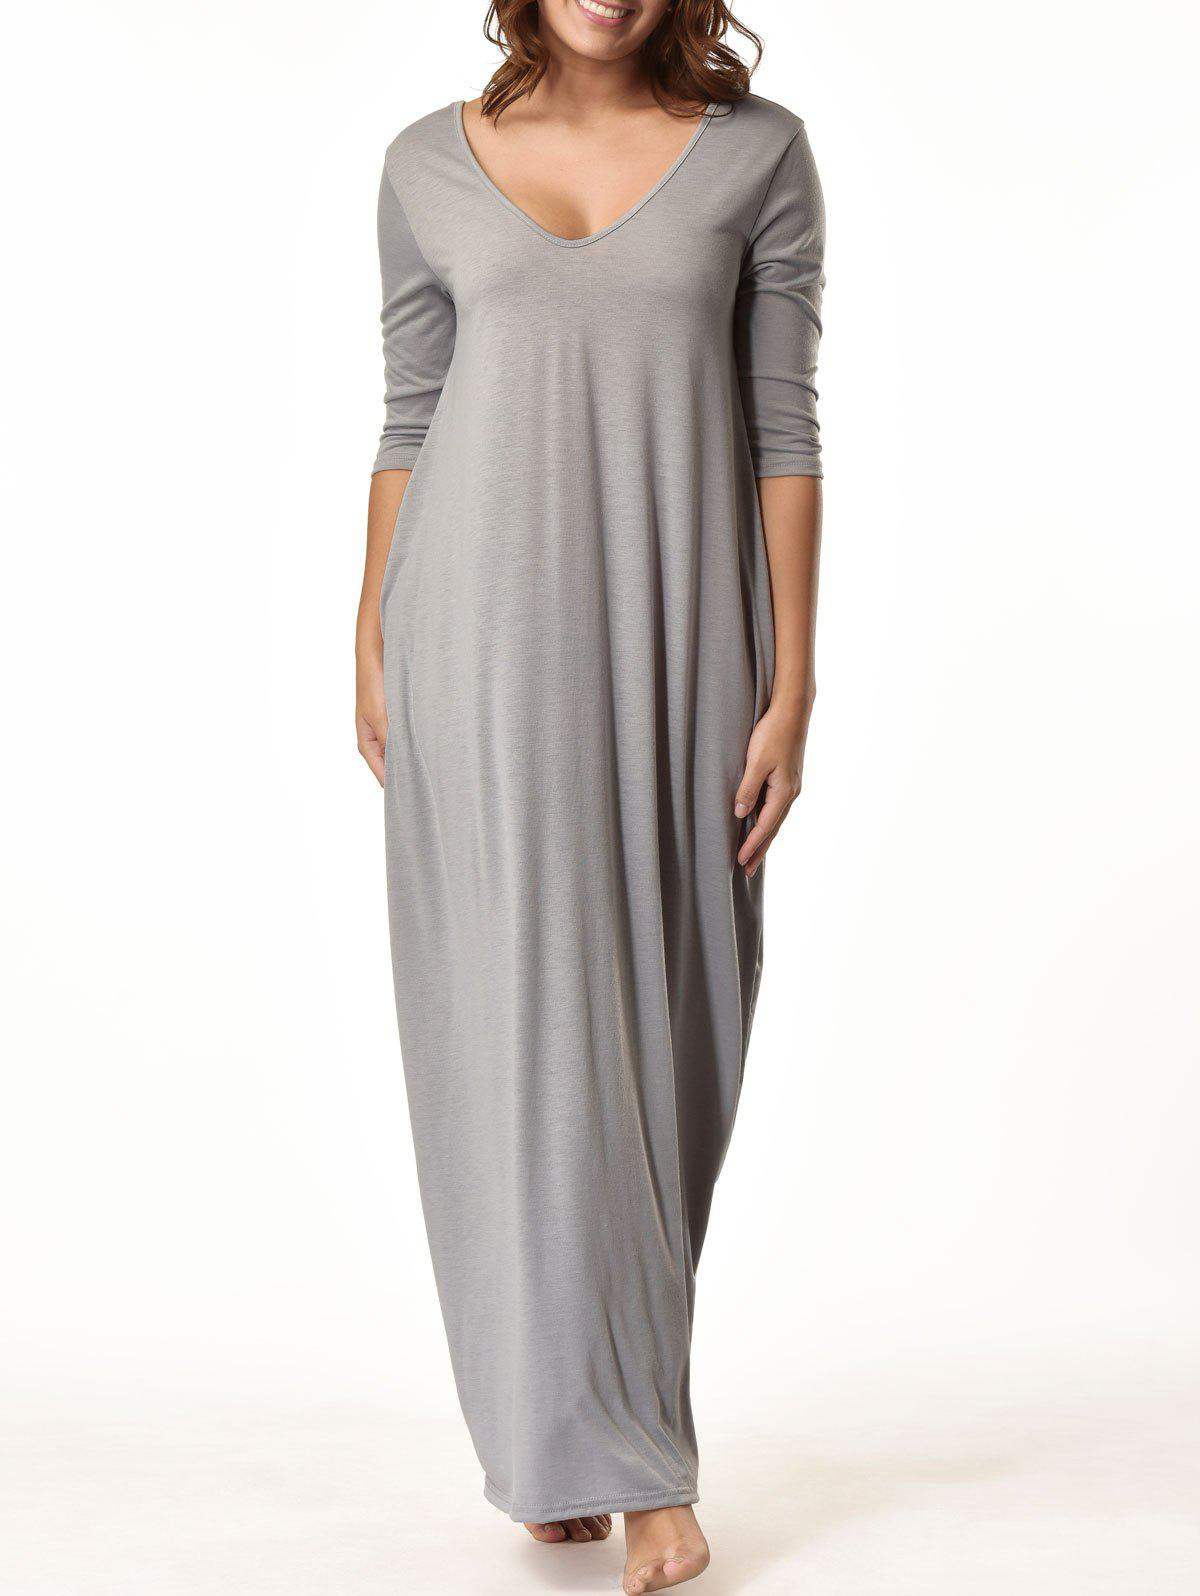 V Neck Floor Length Baggy Dress - GRAY XL